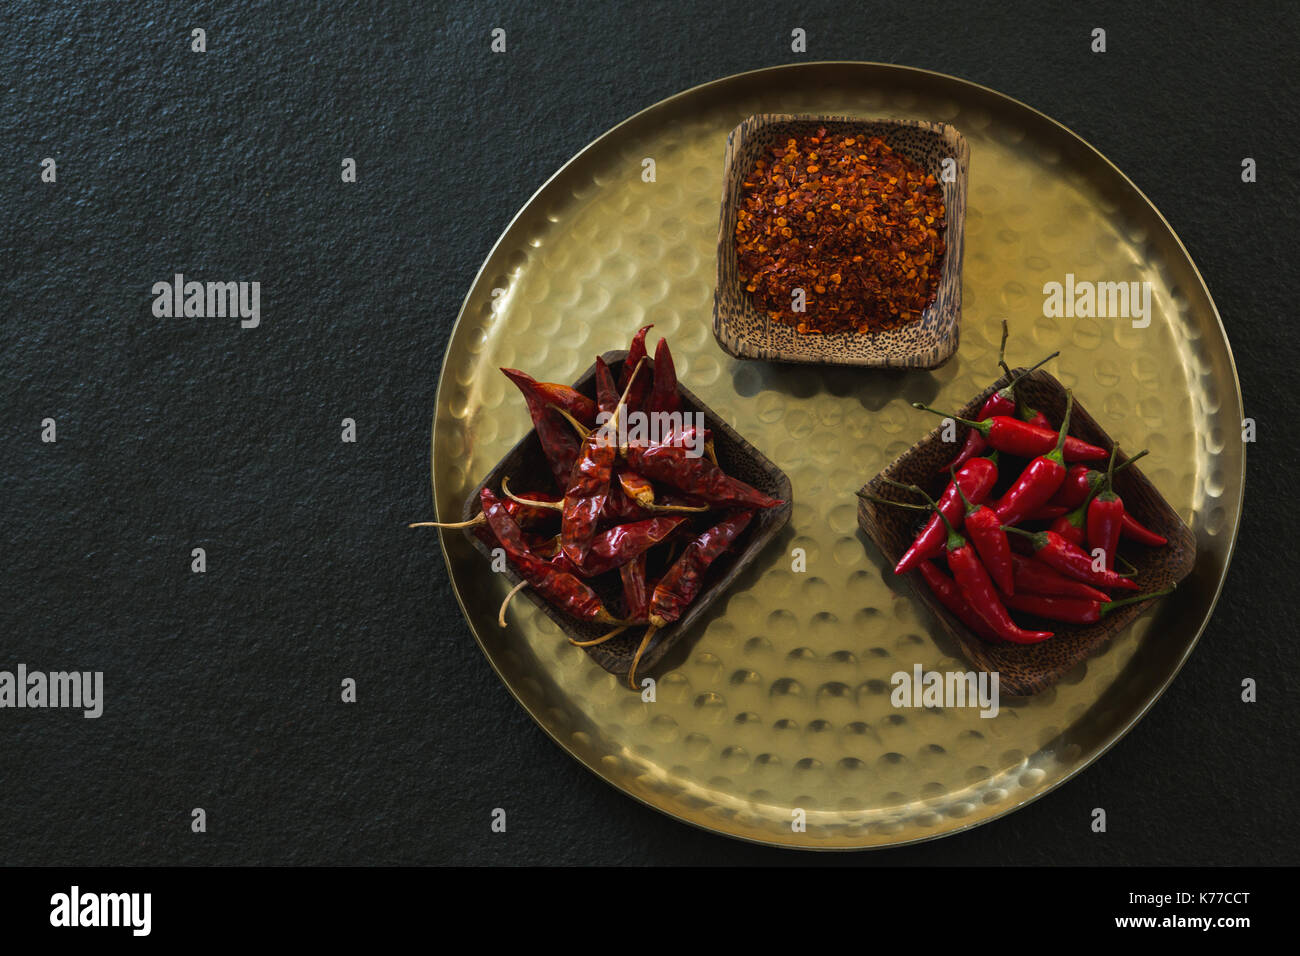 Overhead of red chilies, dried red chili pepper and crushed red pepper in plate Stock Photo